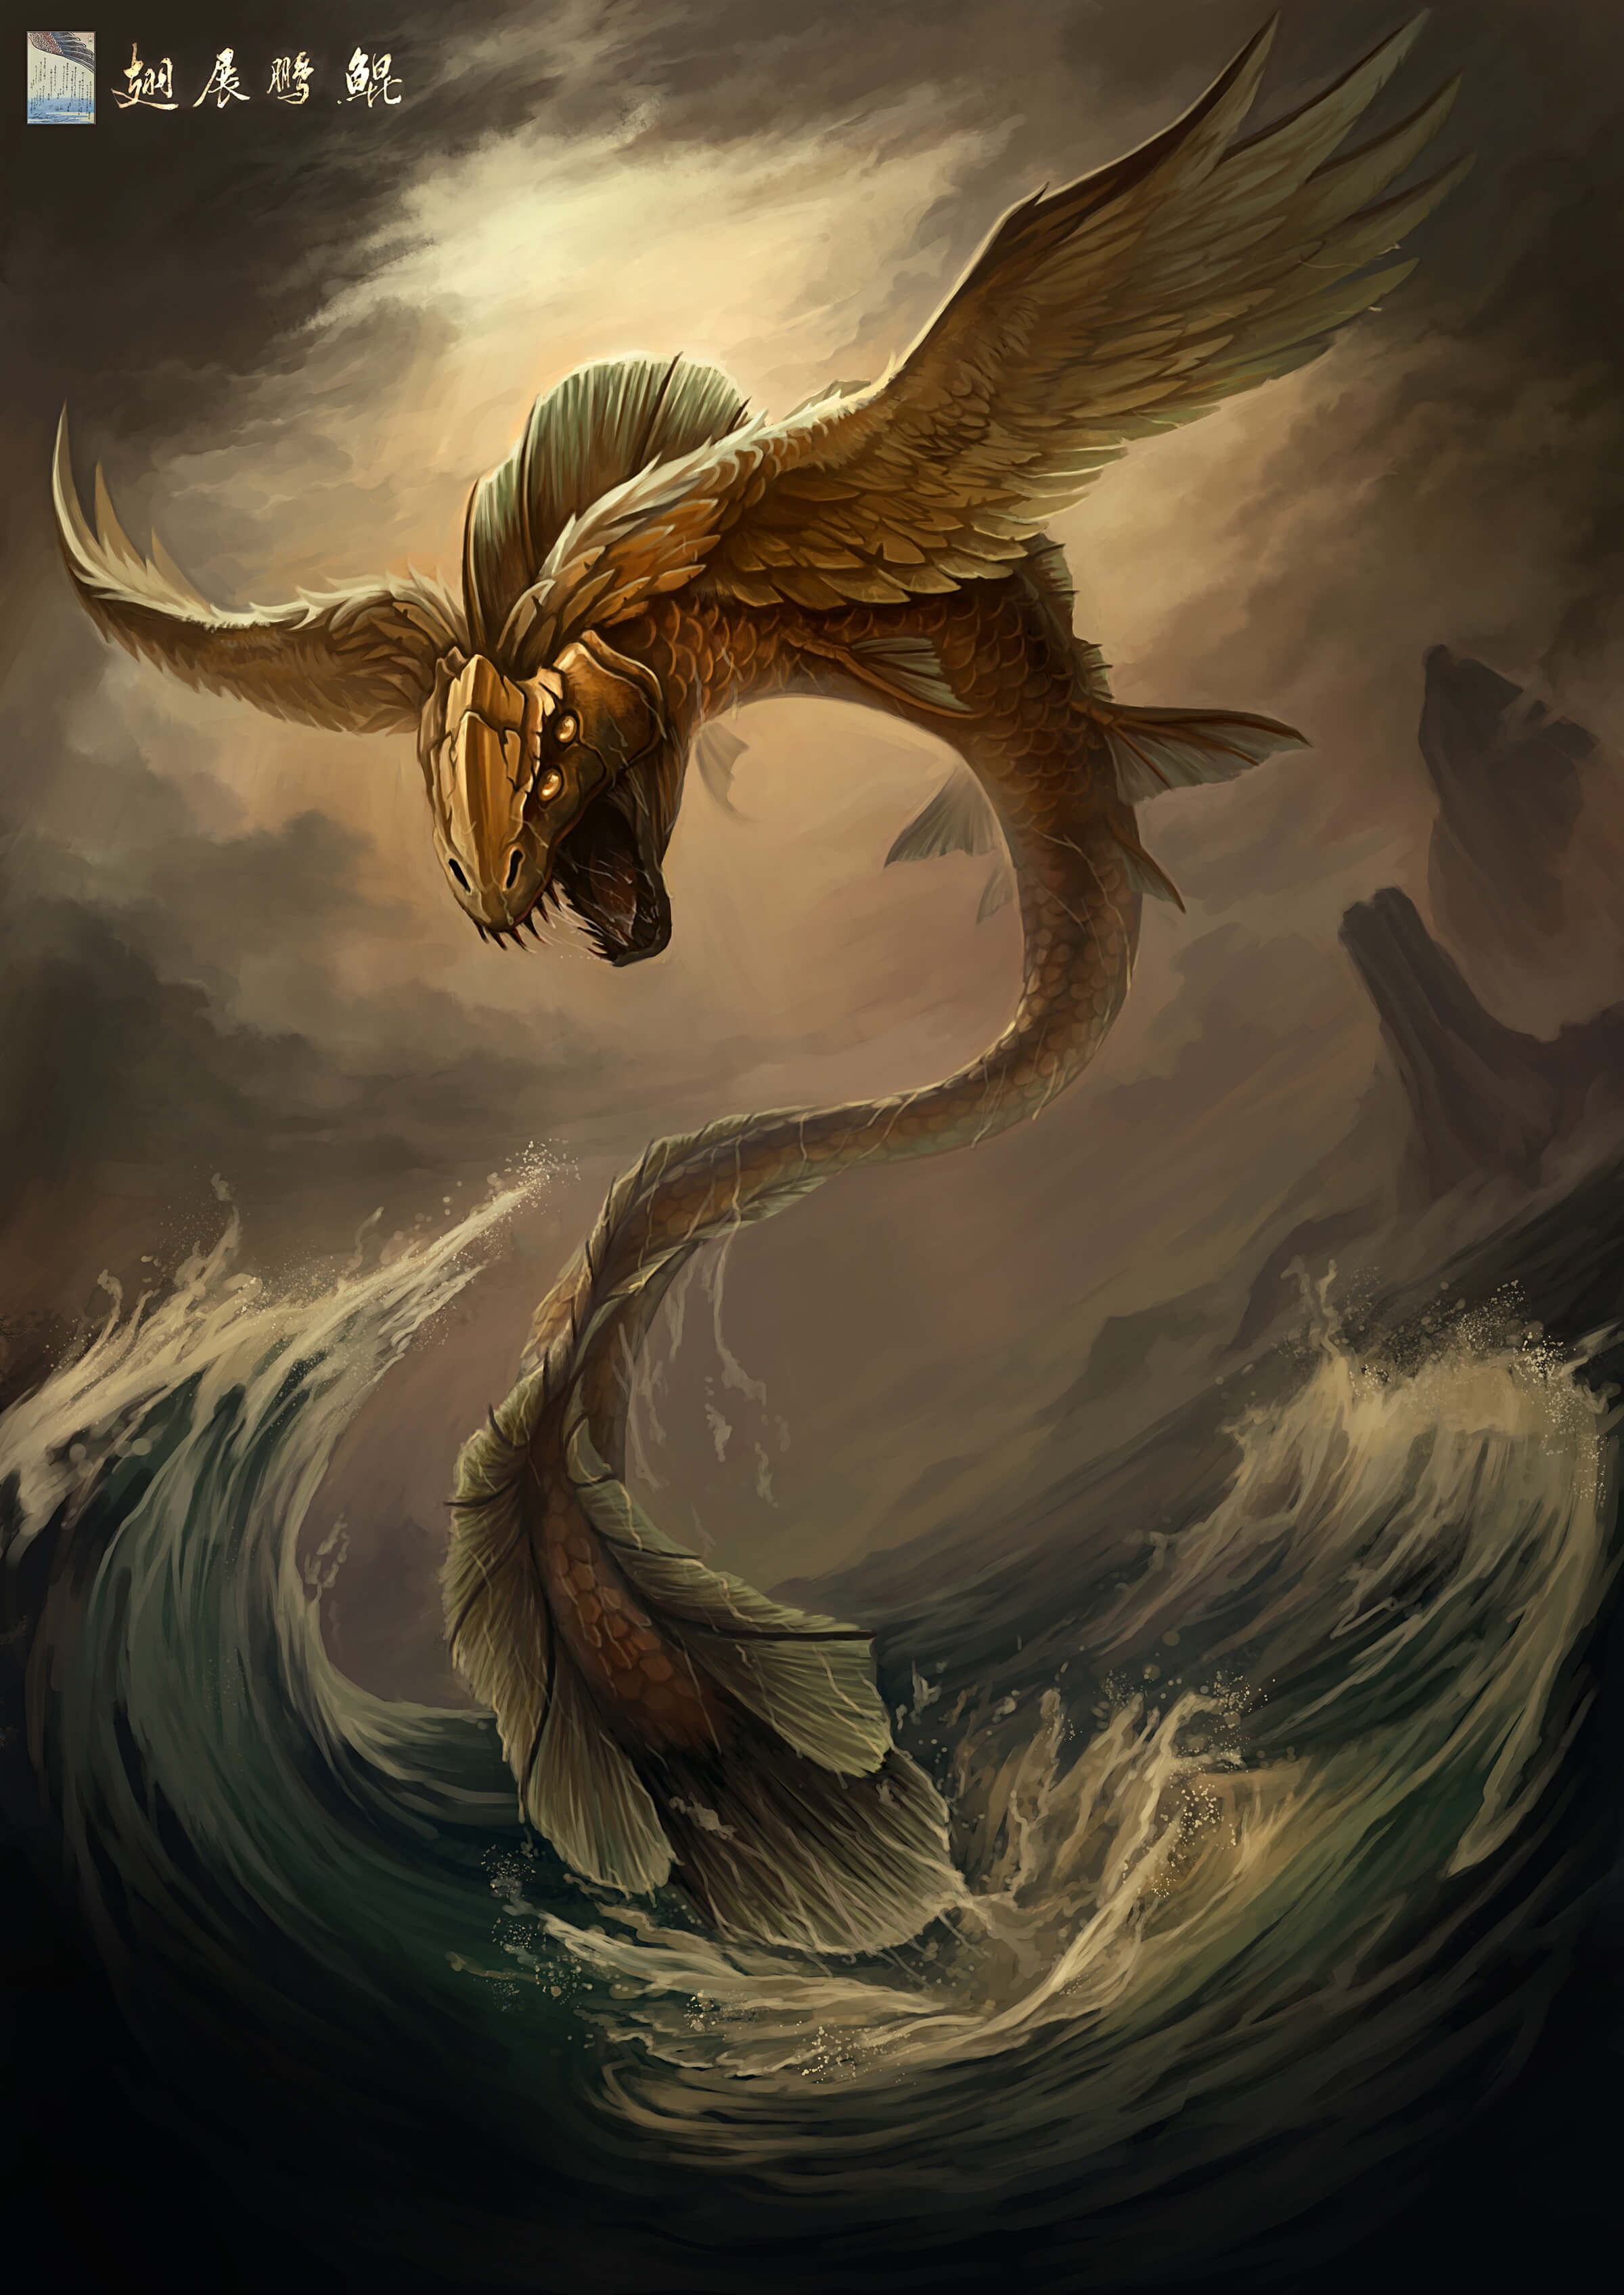 A large, golden, winged fish with four eyes hovers above a dark turbulent sea baring its razor-sharp fangs.